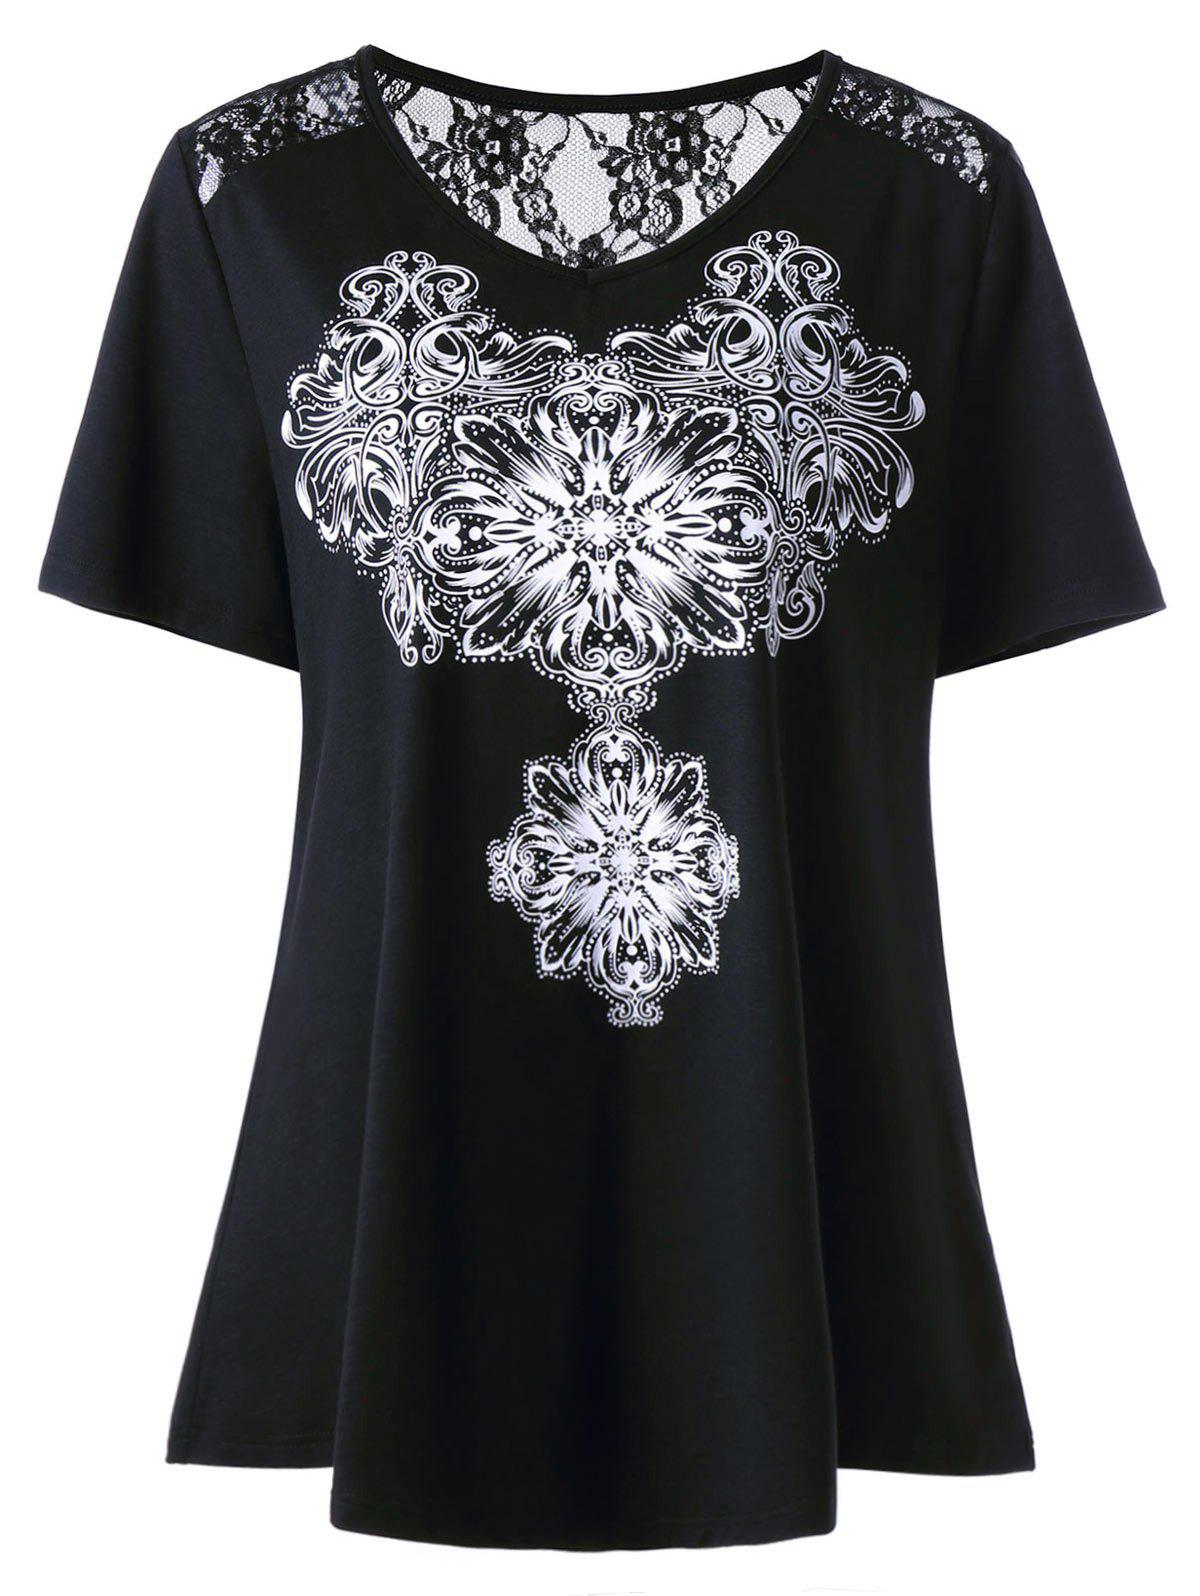 Lace Insert Jewelry Print Plus Size T-ShirtWOMEN<br><br>Size: 5XL; Color: BLACK; Material: Cotton Blends,Polyester,Spandex; Shirt Length: Regular; Sleeve Length: Short; Collar: Scoop Neck; Style: Casual; Season: Summer; Embellishment: Lace; Pattern Type: Print; Elasticity: Micro-elastic; Weight: 0.2500kg; Package Contents: 1 x T-Shirt;